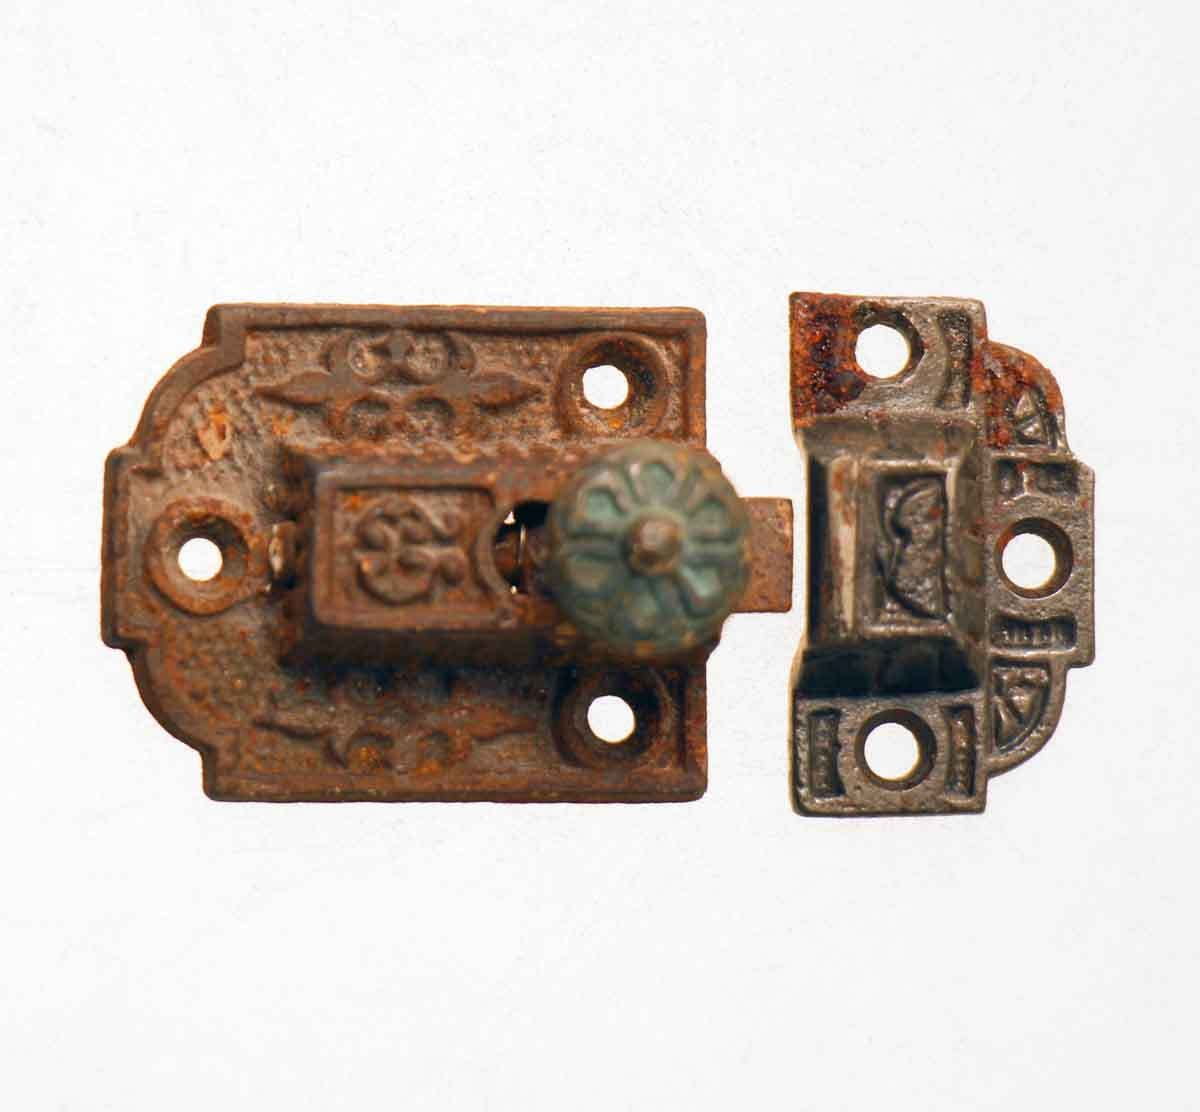 Aesthetic Victorian Cabinet Latch